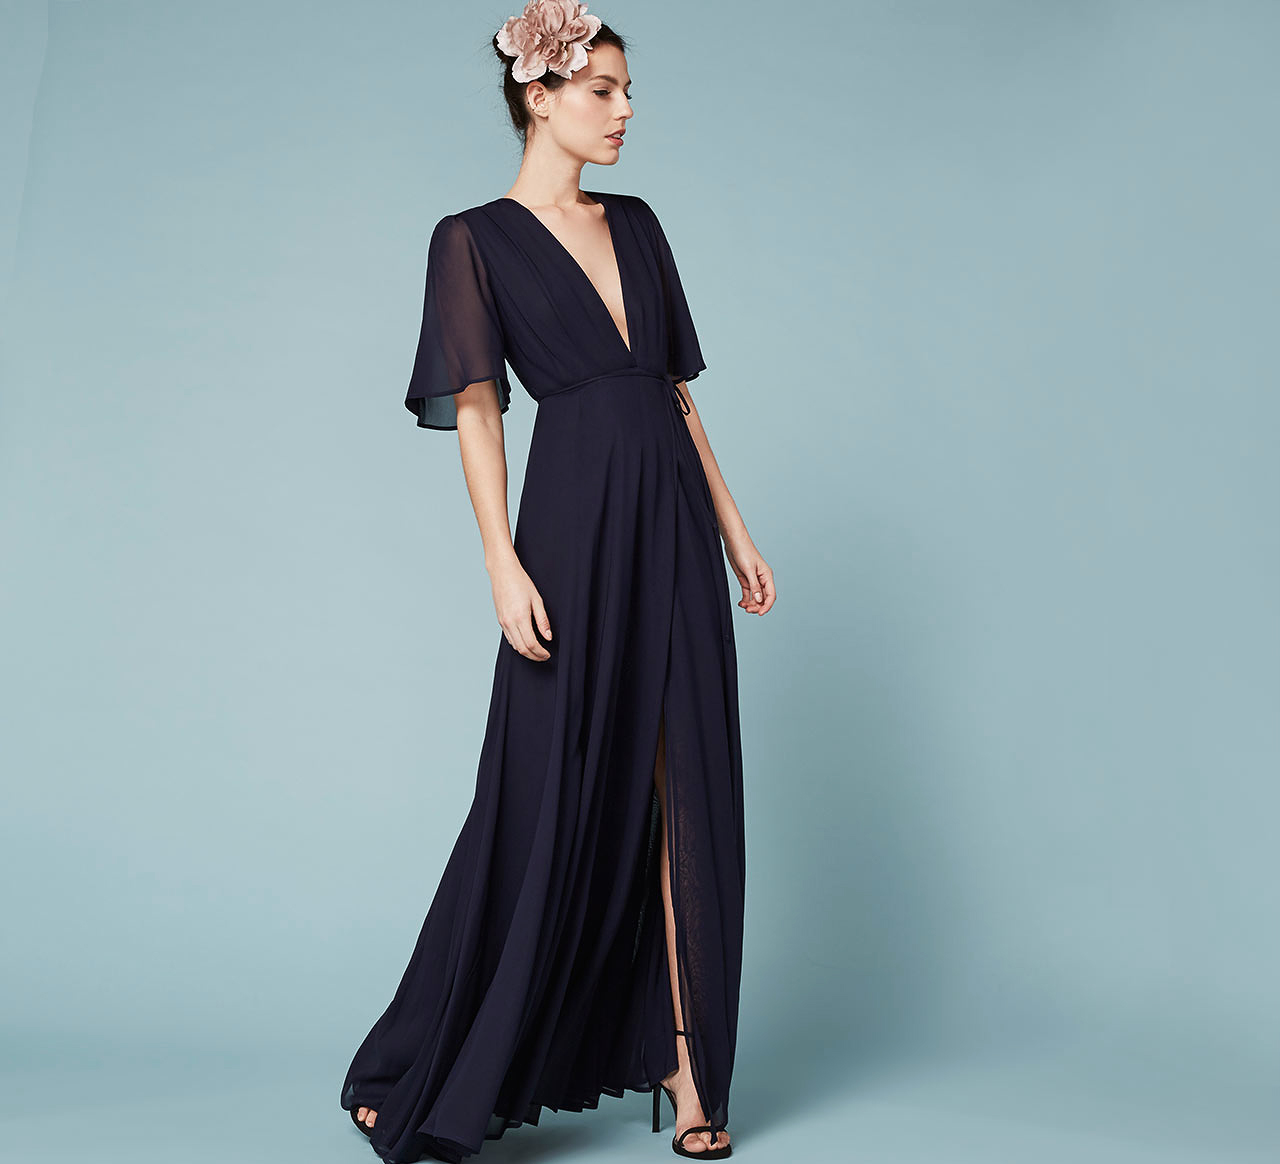 winter bridesmaid dress reformation catalina navy chiffon